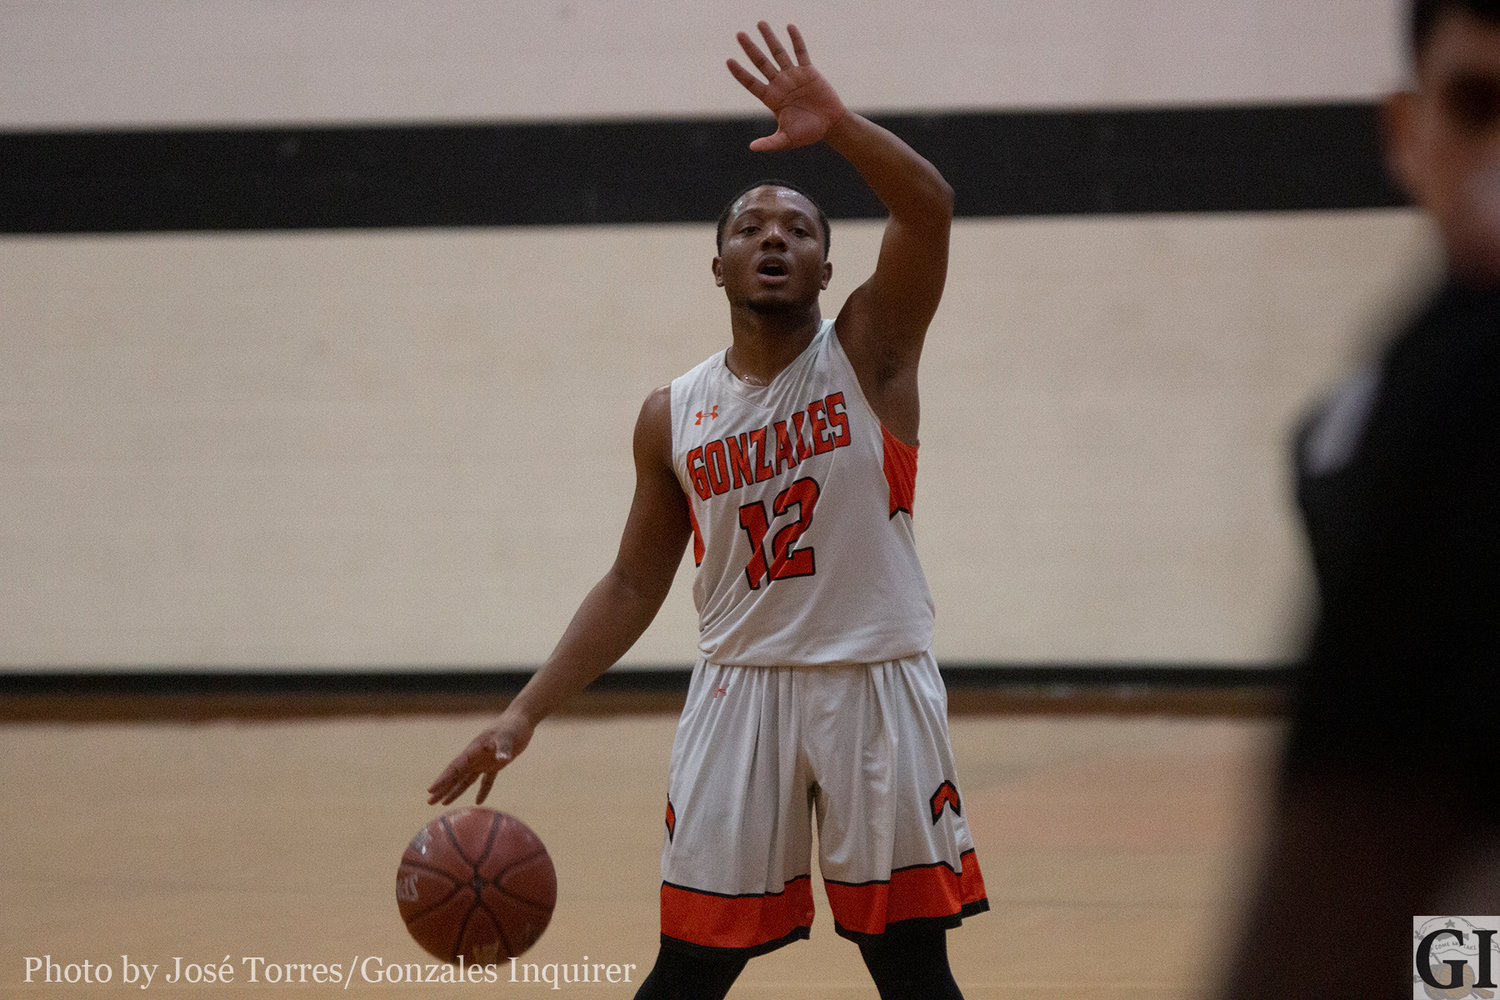 Senior Apache player Contrell Smith (12) was effective Tuesday night, leading the team in scoring with 17 points as he went 8-of-13 from the field in Gonzales' 60-54 loss.